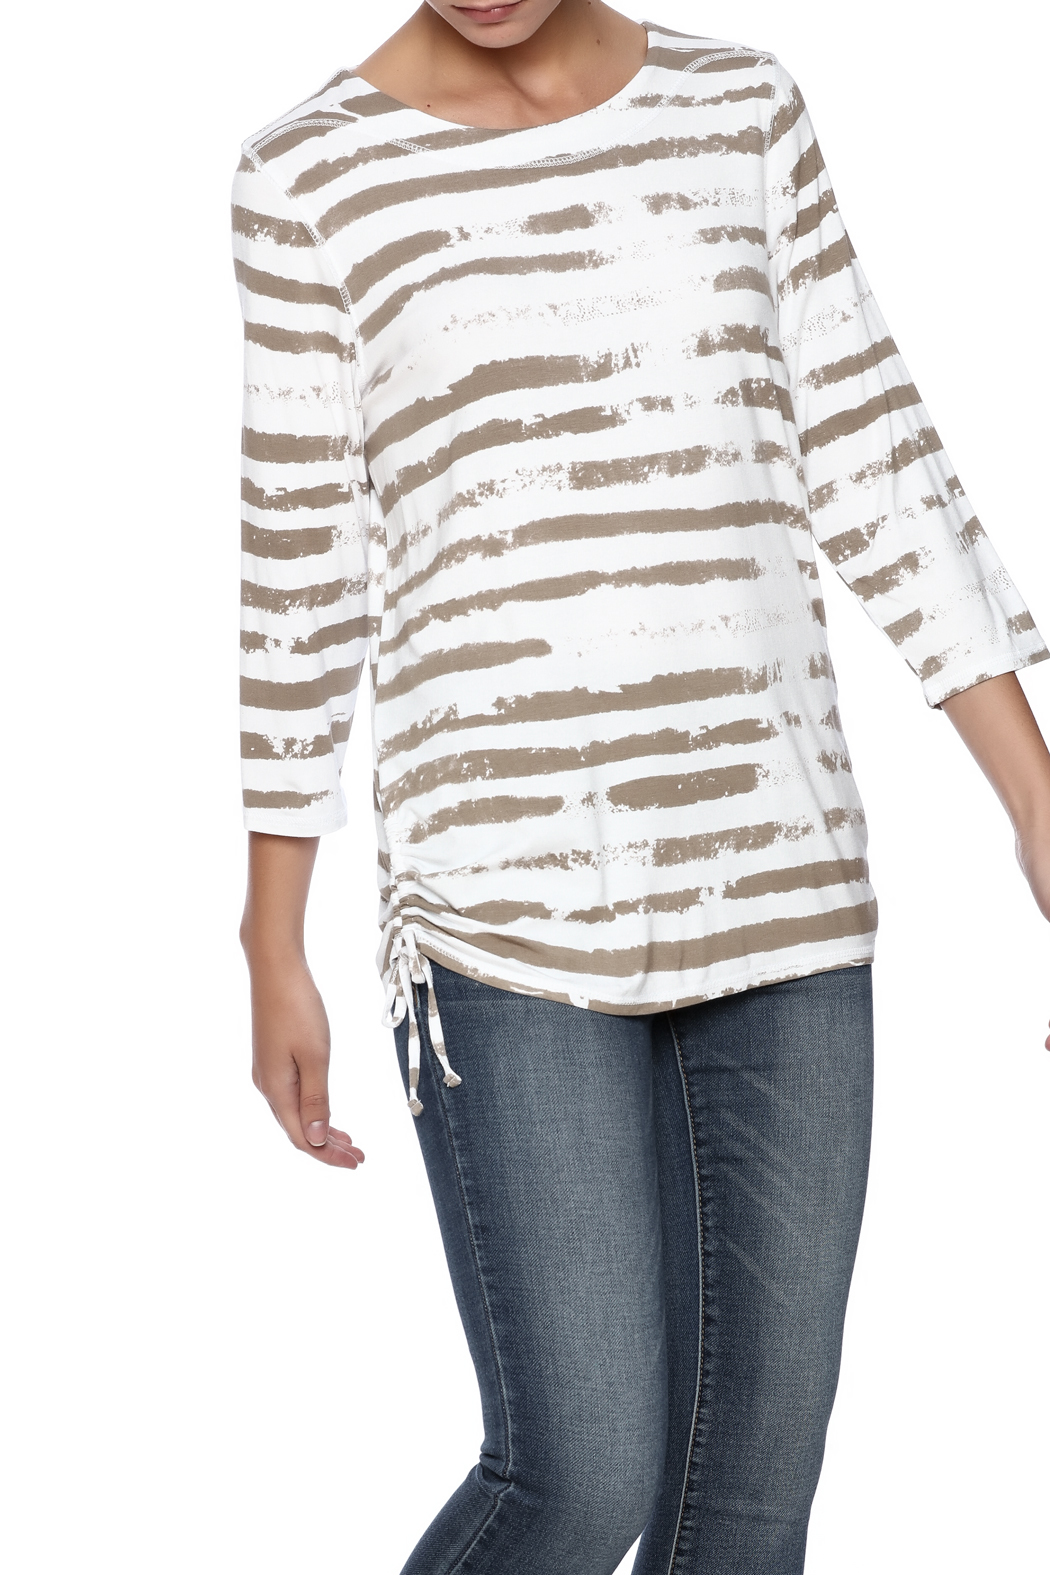 French Dressing Jeans Cloud Stripe Top - Front Cropped Image